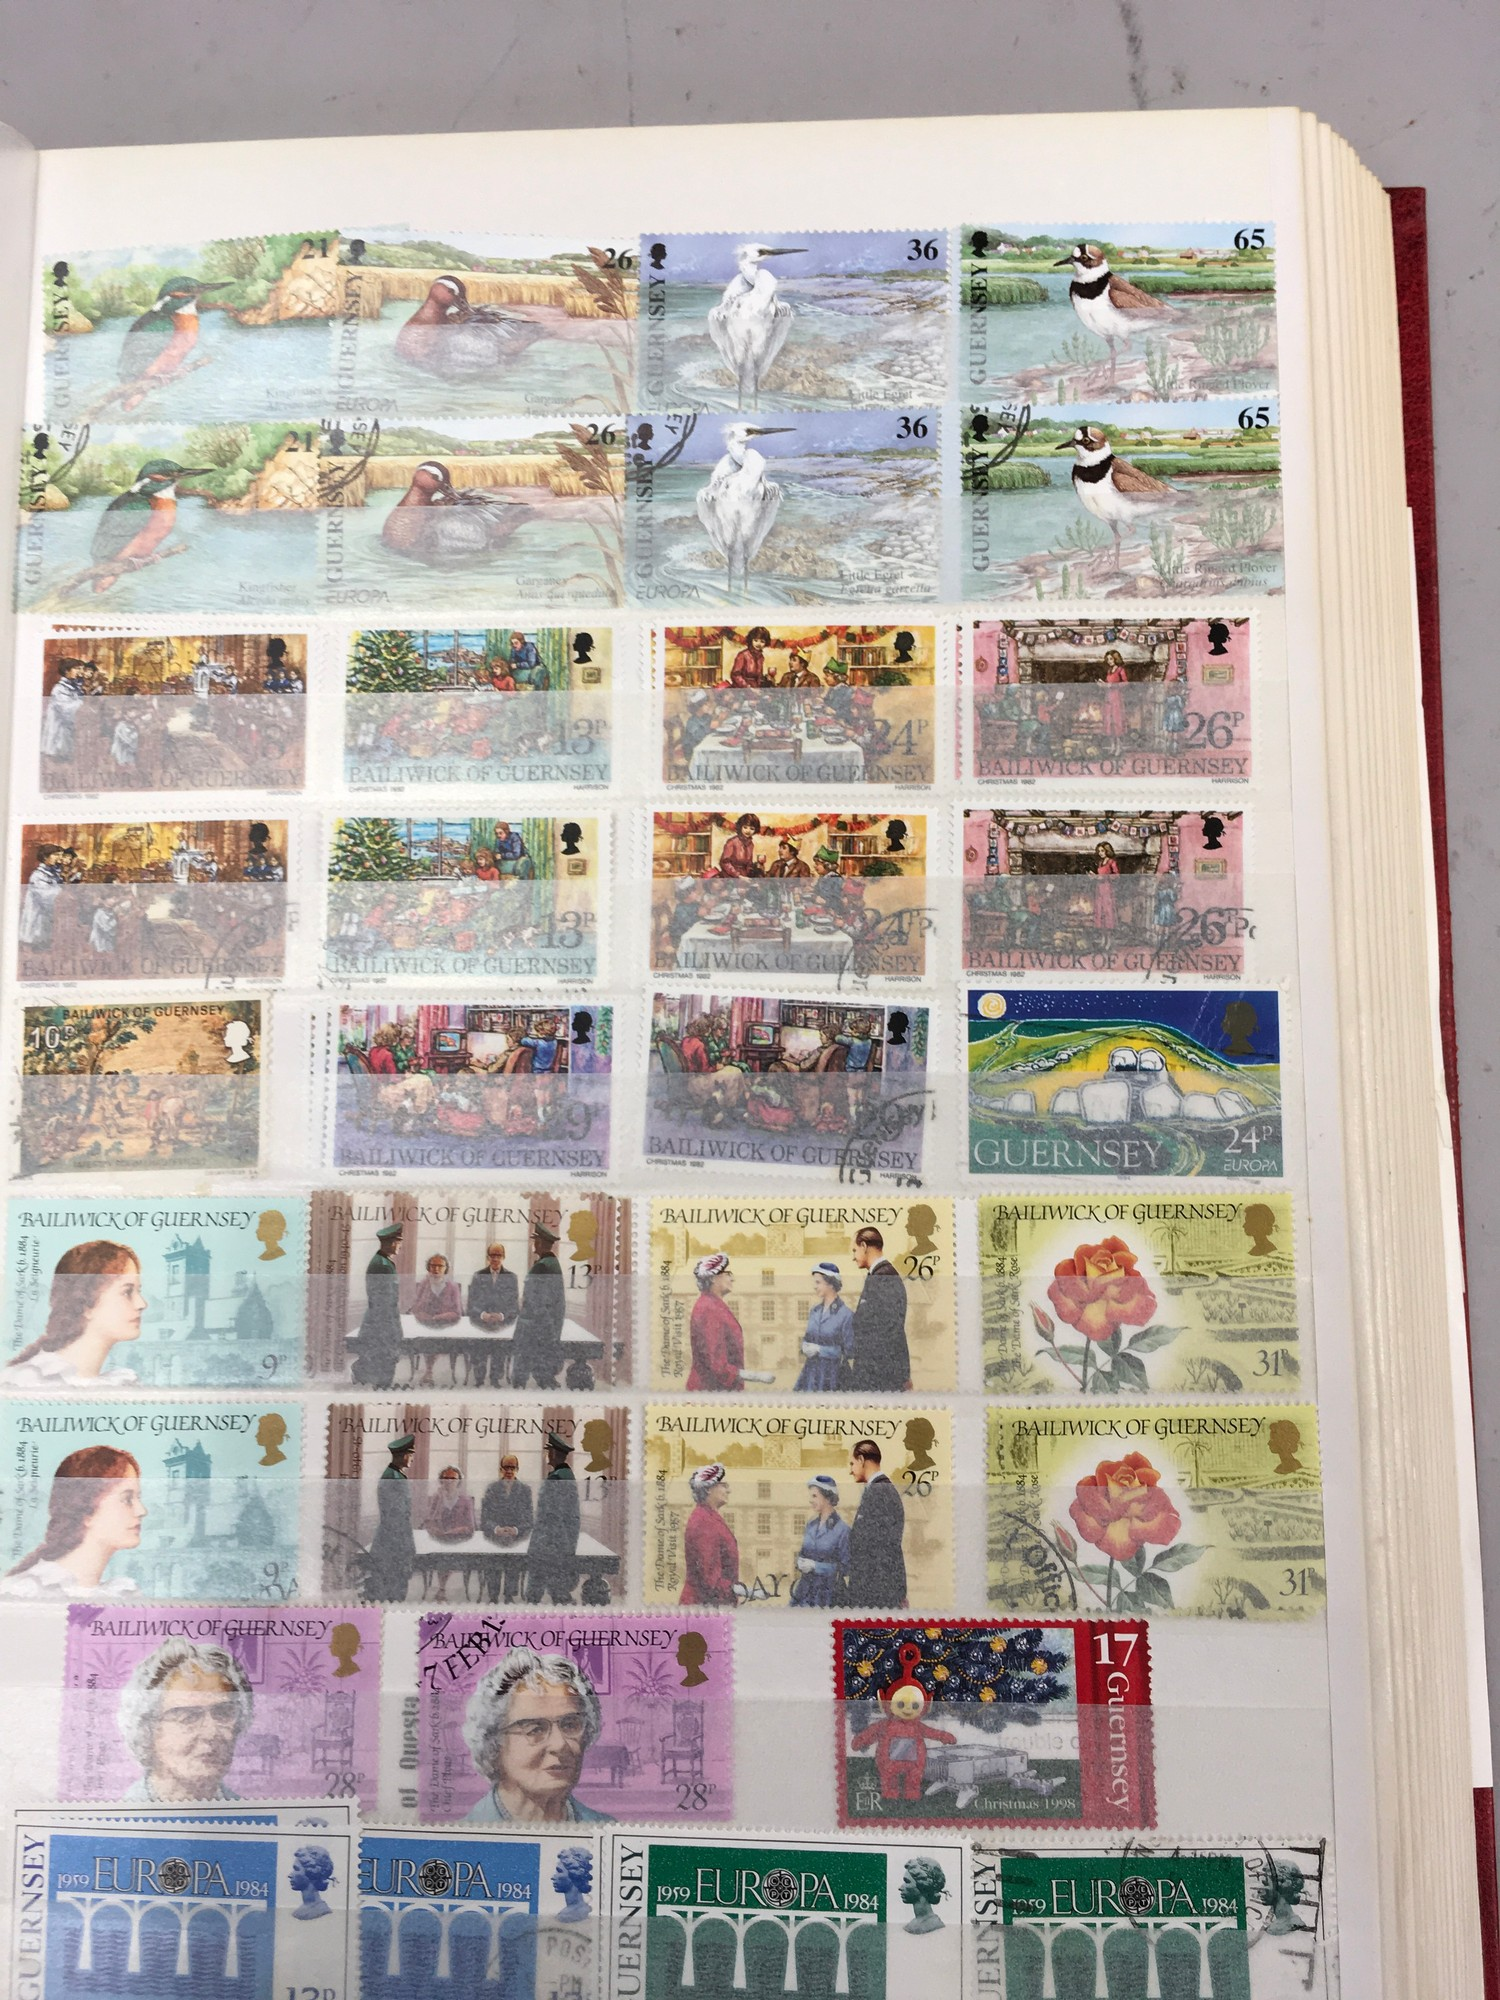 3 x Albums containing Channel Islands, Jersey Guernsey and Alderney over £800 in mint stamps. - Image 5 of 21